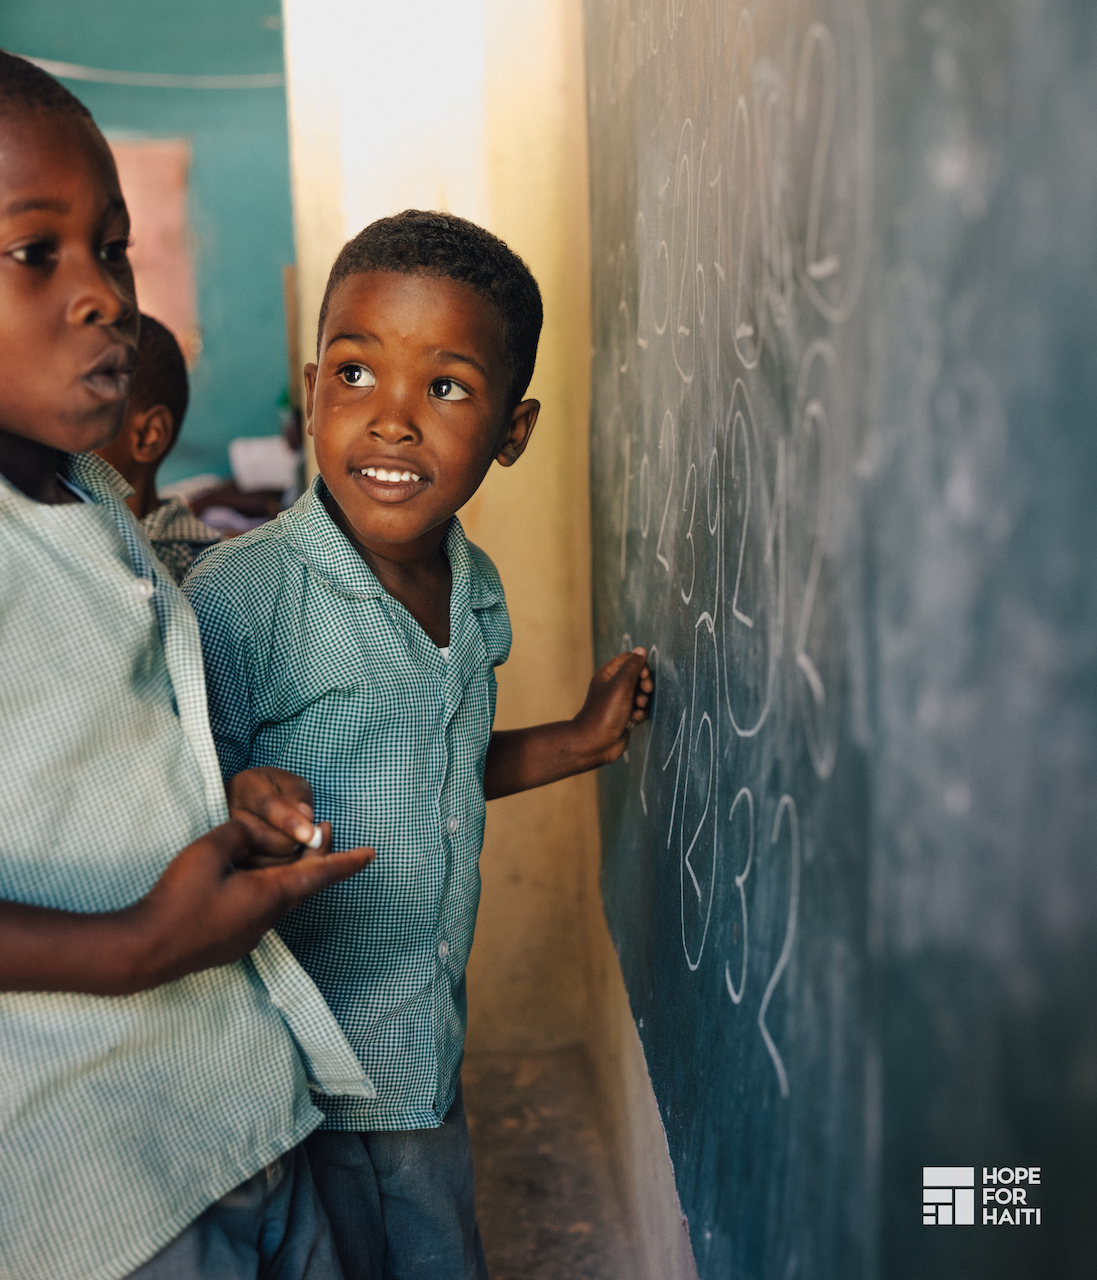 Hope for Haiti education picture 2